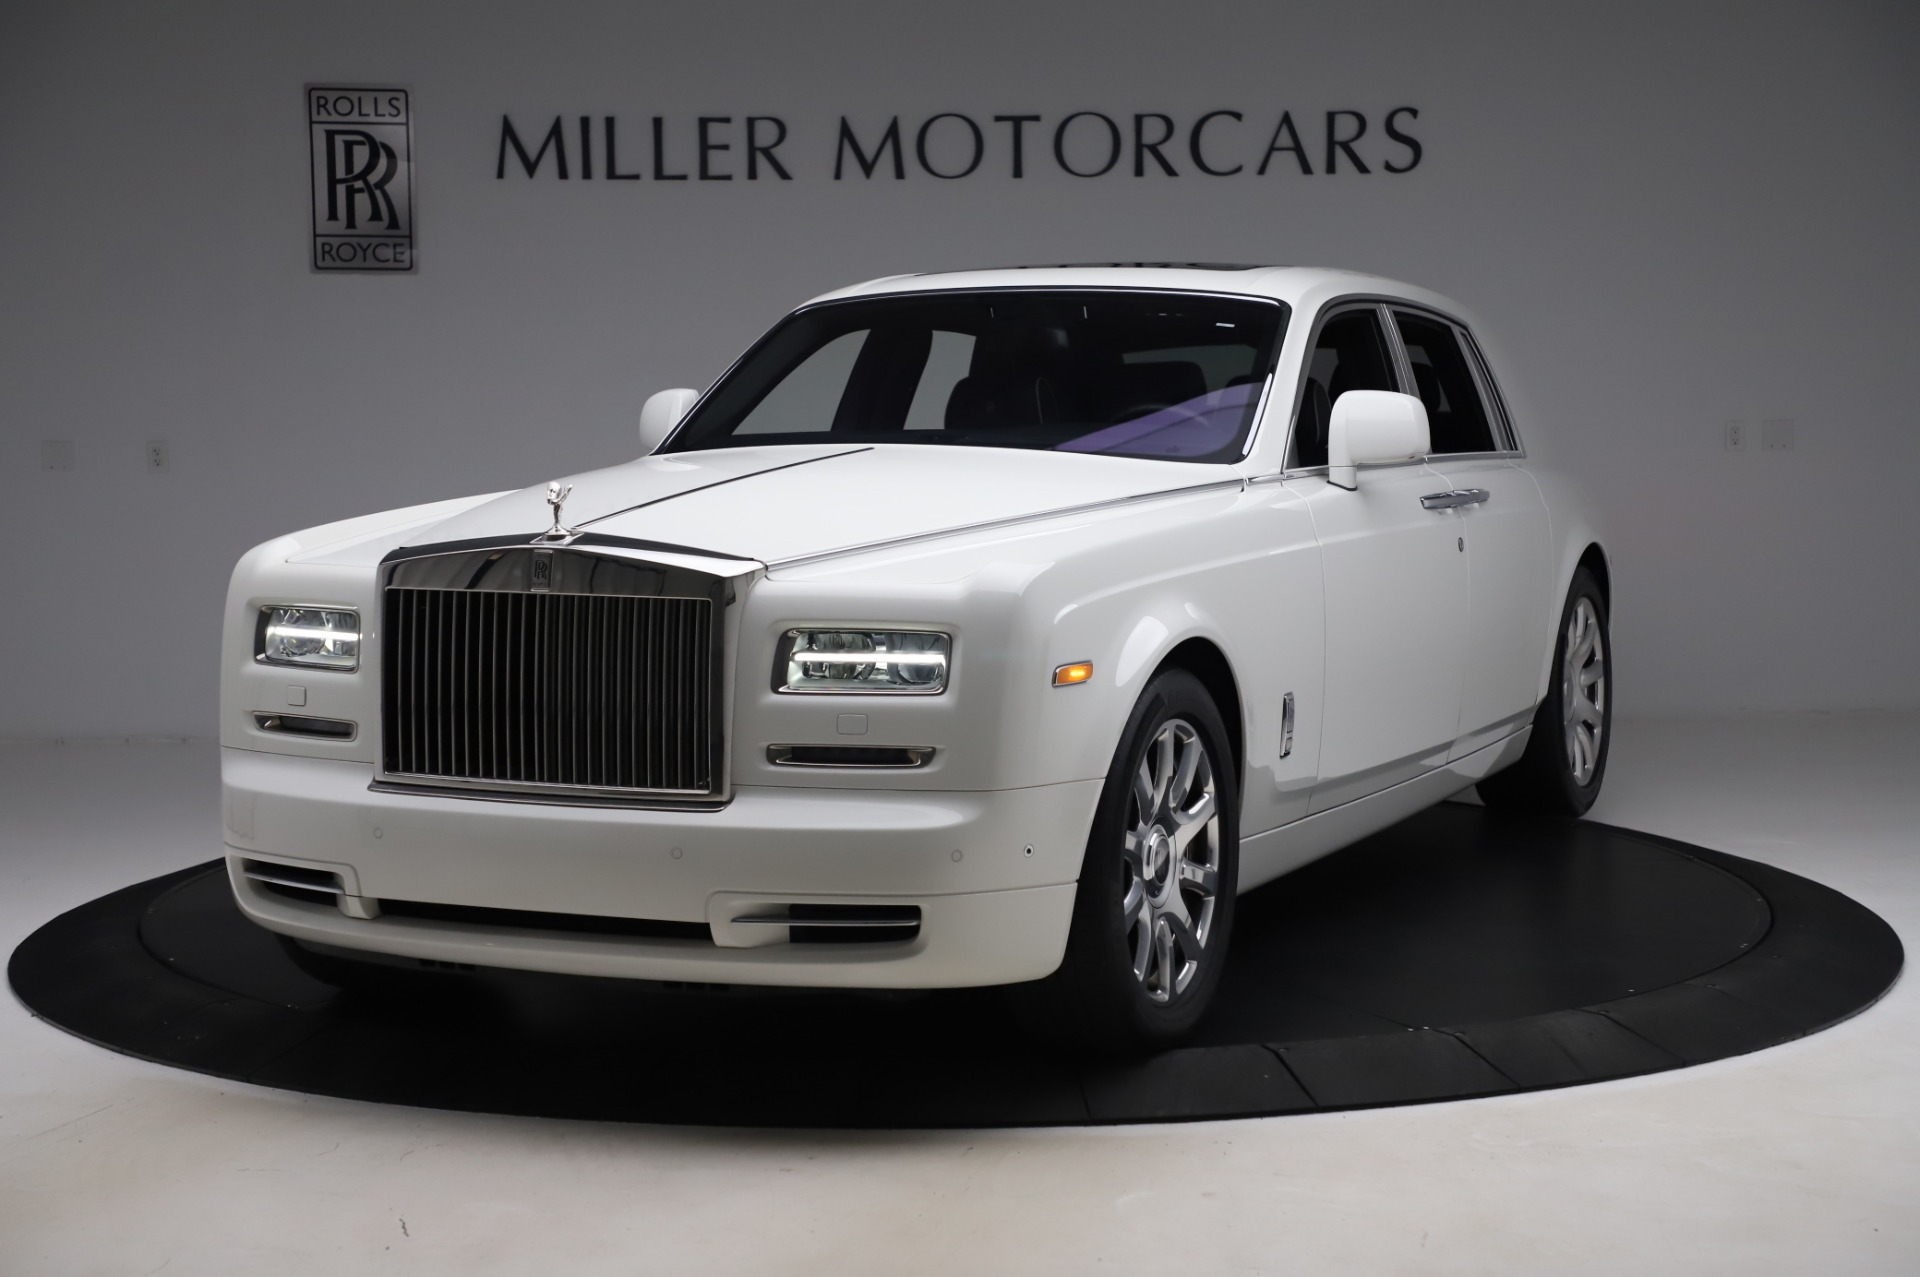 Used 2014 Rolls-Royce Phantom for sale $189,900 at Pagani of Greenwich in Greenwich CT 06830 1